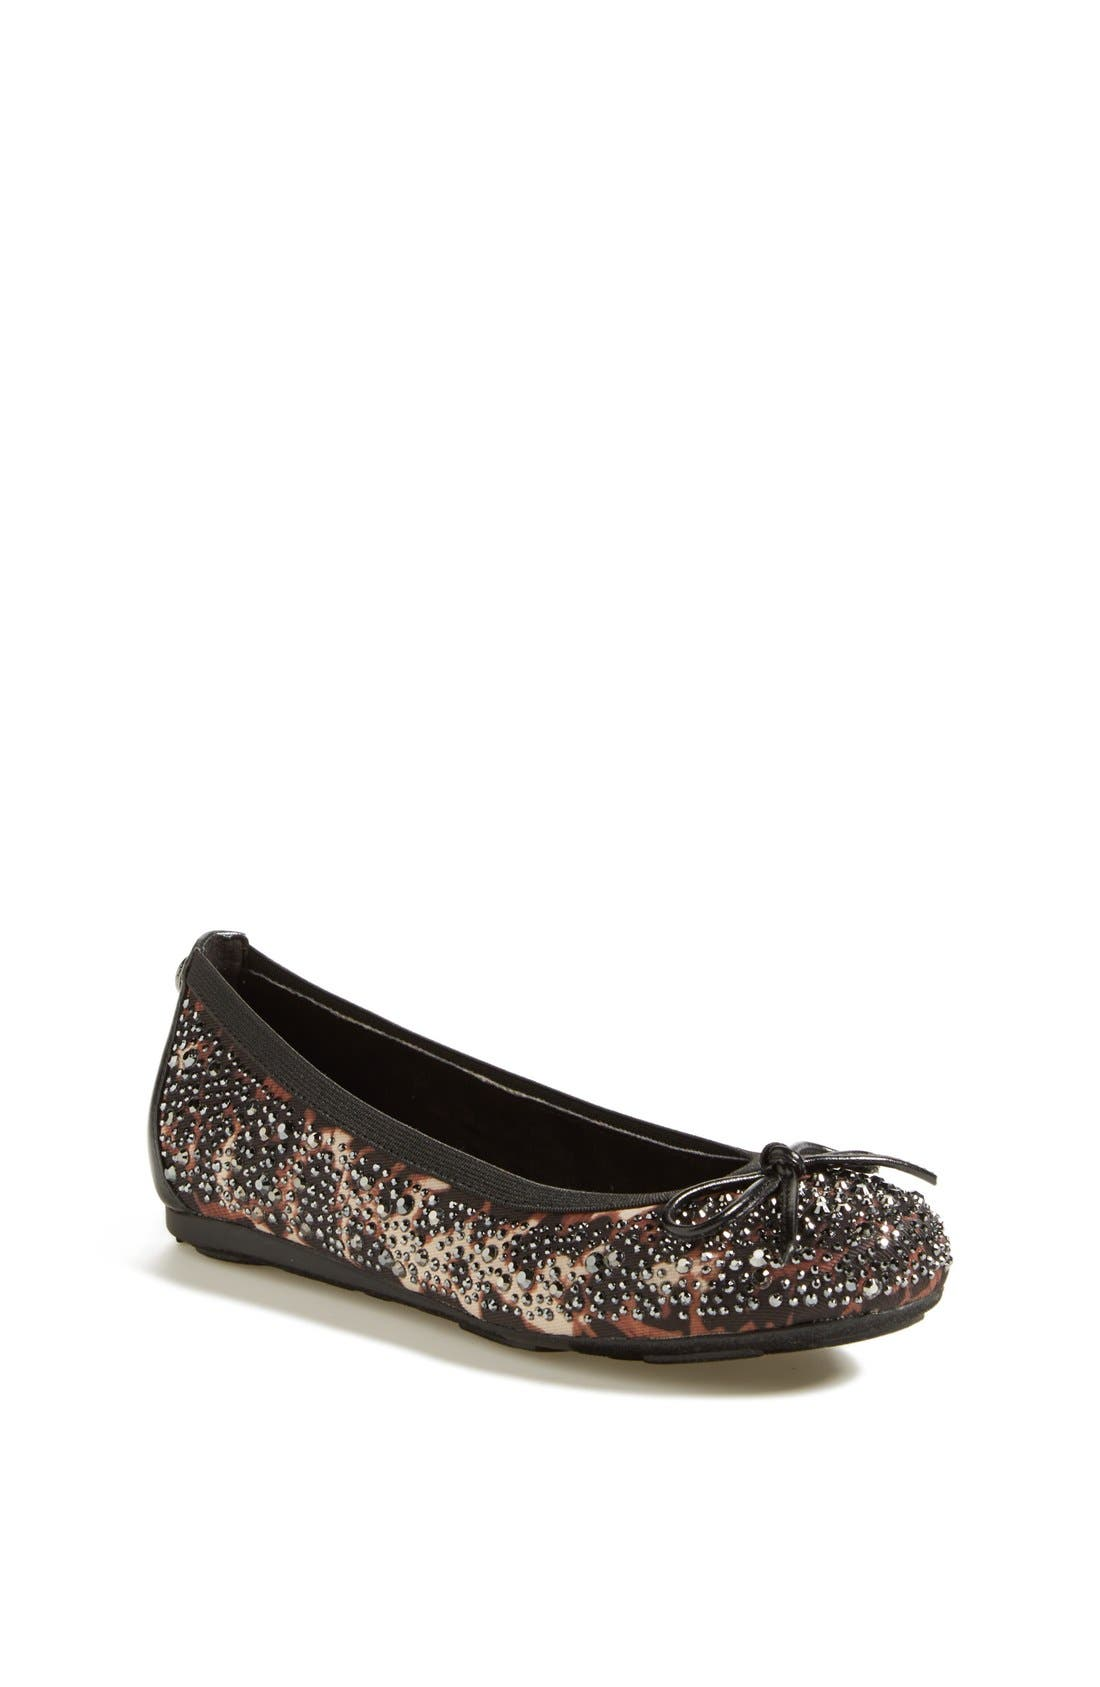 Alternate Image 1 Selected - Stuart Weitzman 'Fannie Crystal' Flat (Online Only) (Little Kid & Big Kid)